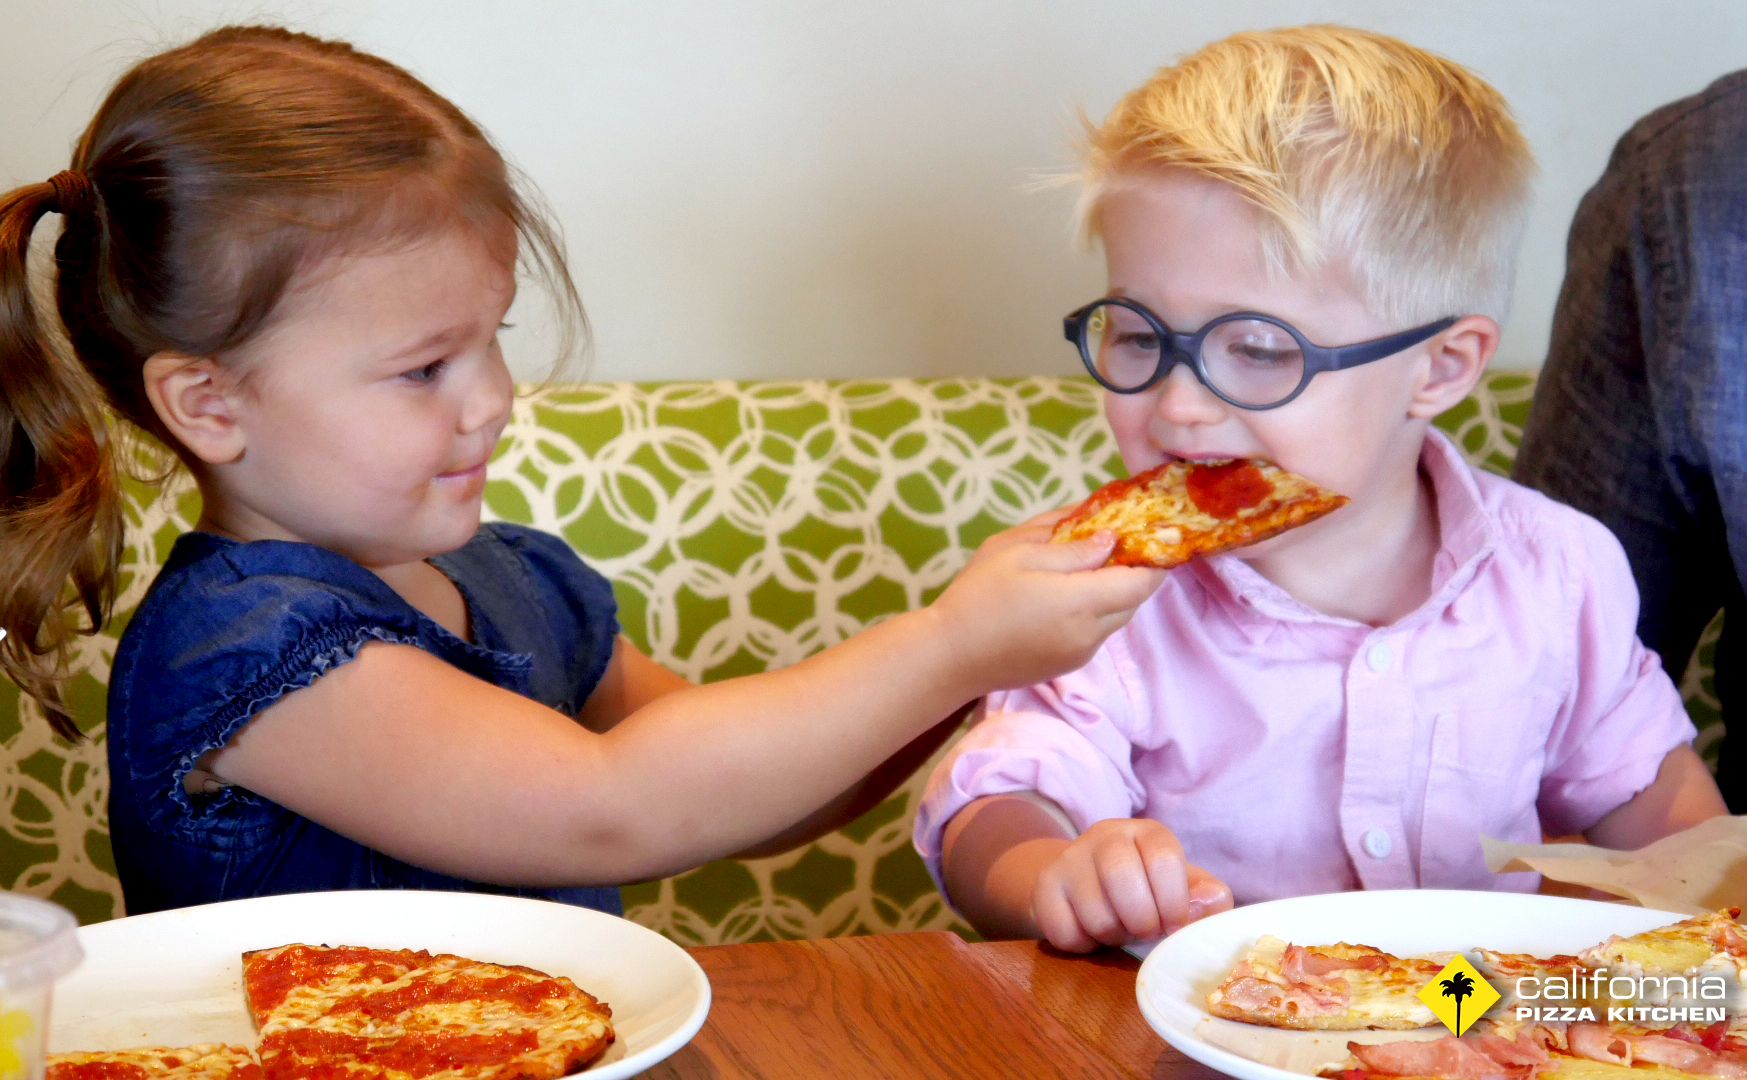 California Pizza Kitchen Just Added Cauliflower Crust Pizzas to Their Kids' Menu